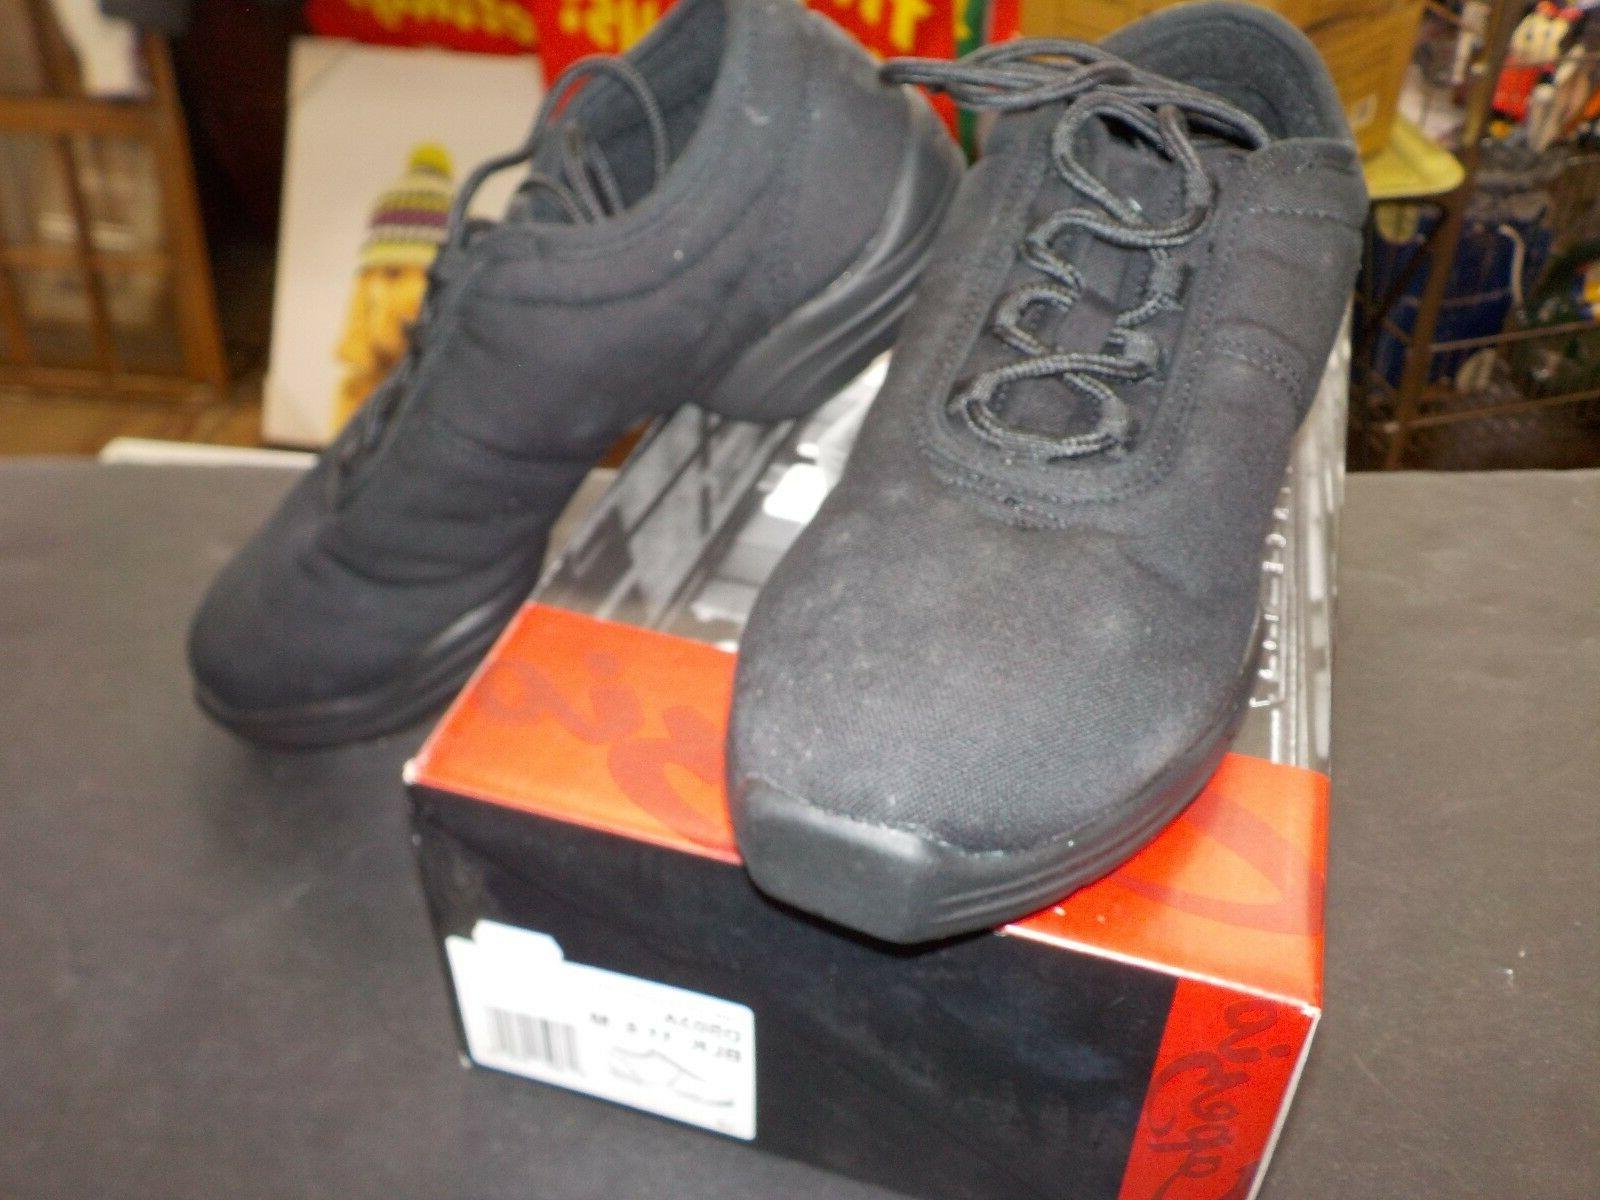 Capezio Canvas Dance Sneaker Black - Adult Size 11.5M